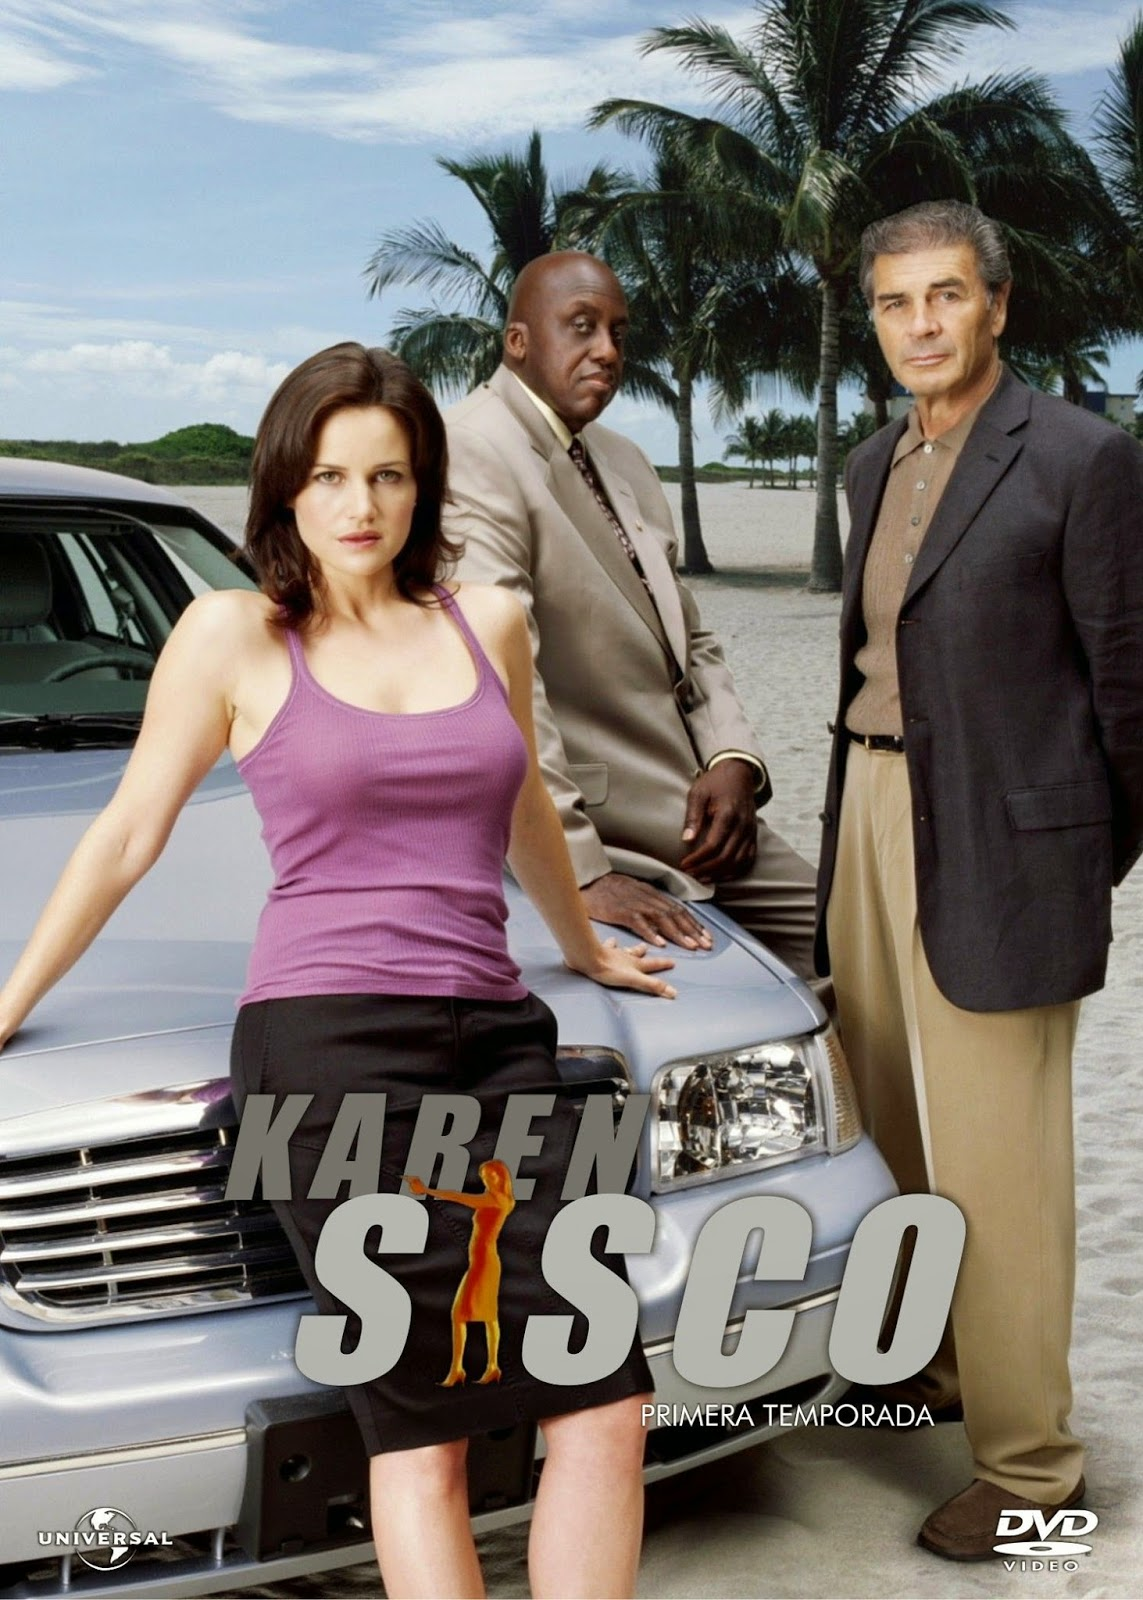 Karen Sisco - Serie Tv (2003)